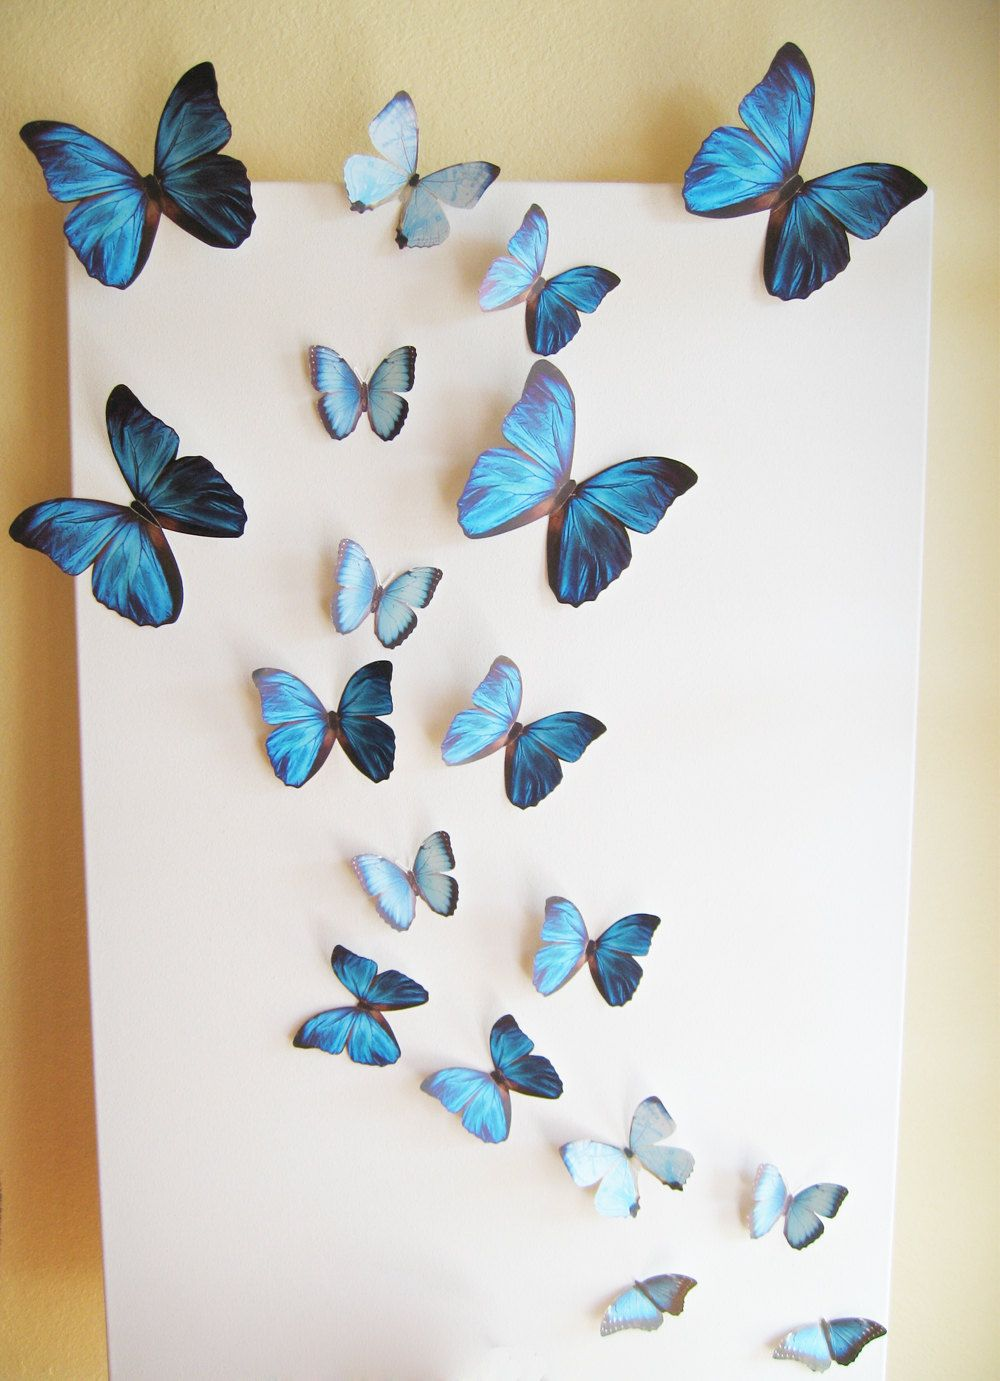 18 Butterflies, Blue, Something Blue, Butterfly, Paper, Wall Decor, 3D